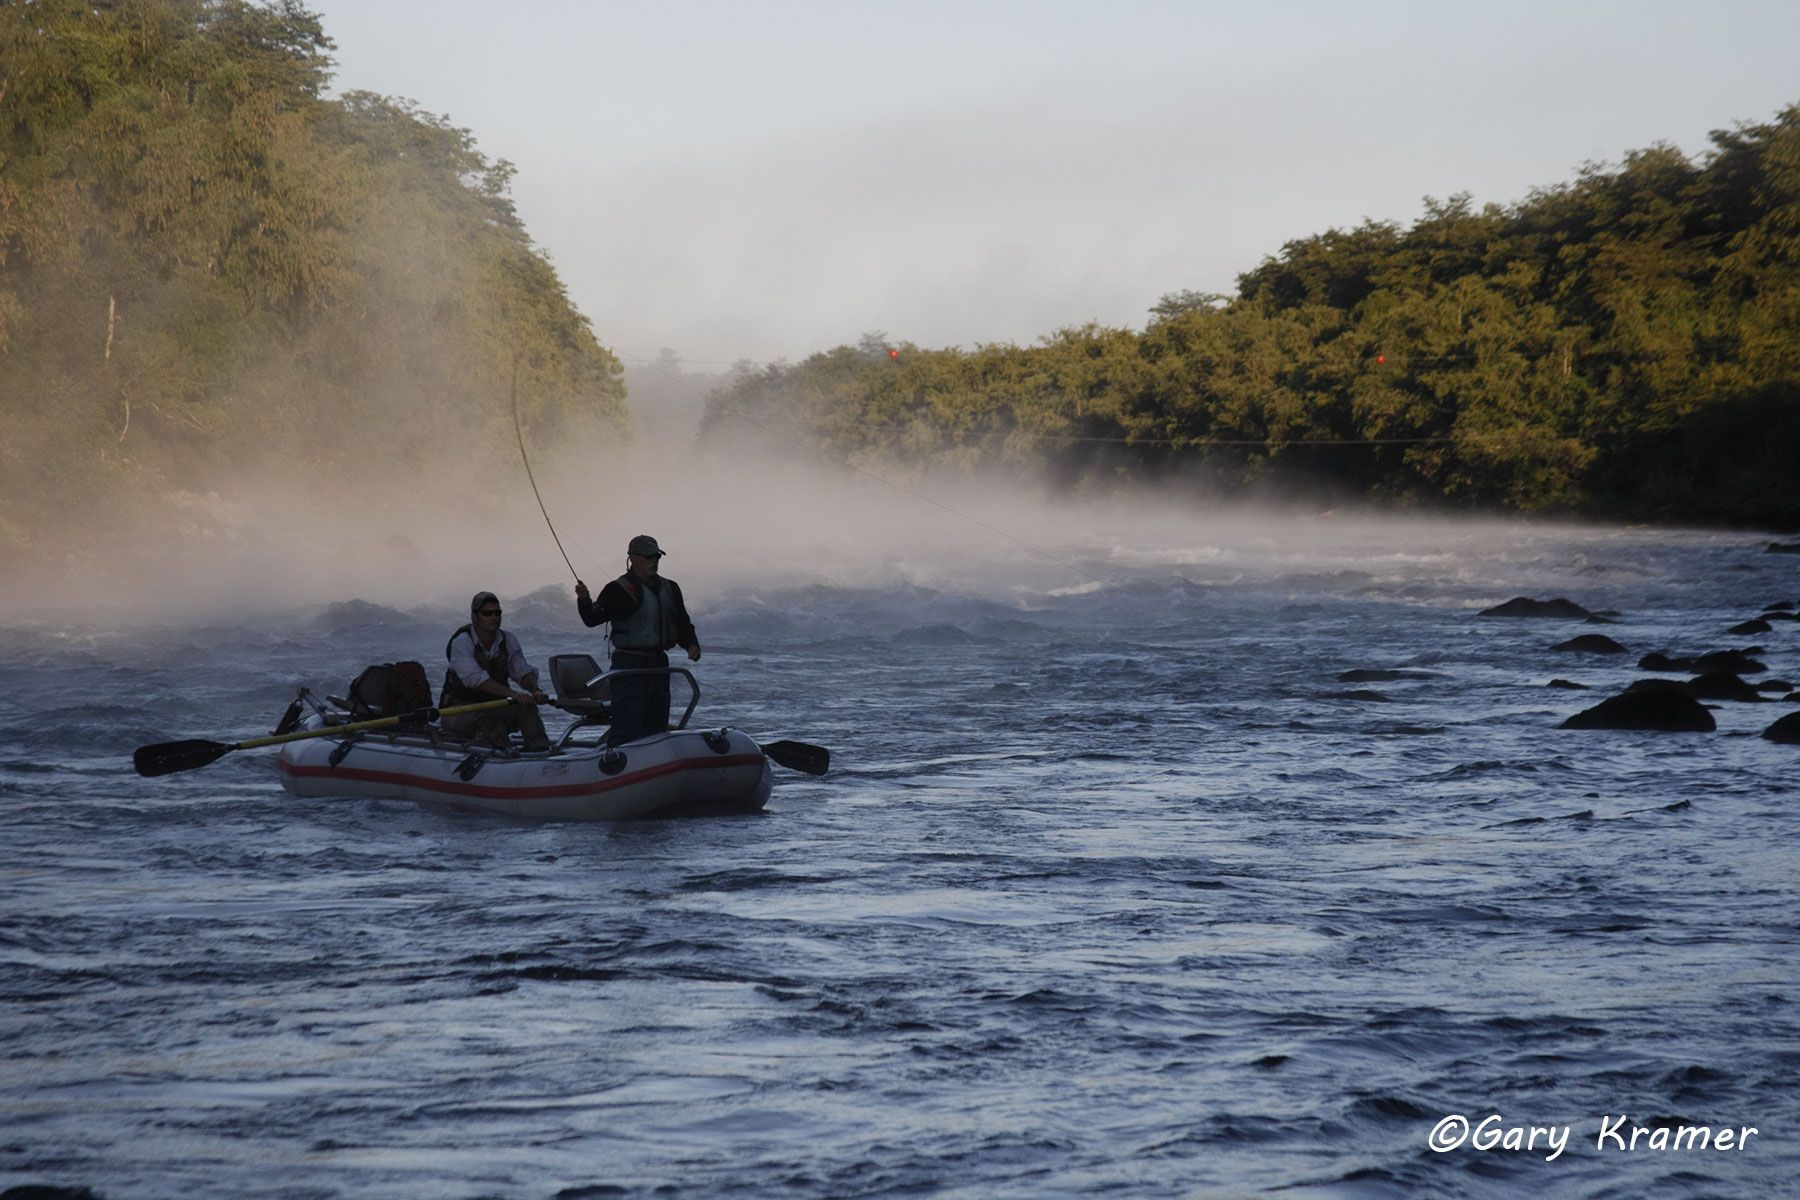 Flyfishing for Trout from rubber raft, Chile  - NFTdr#084d